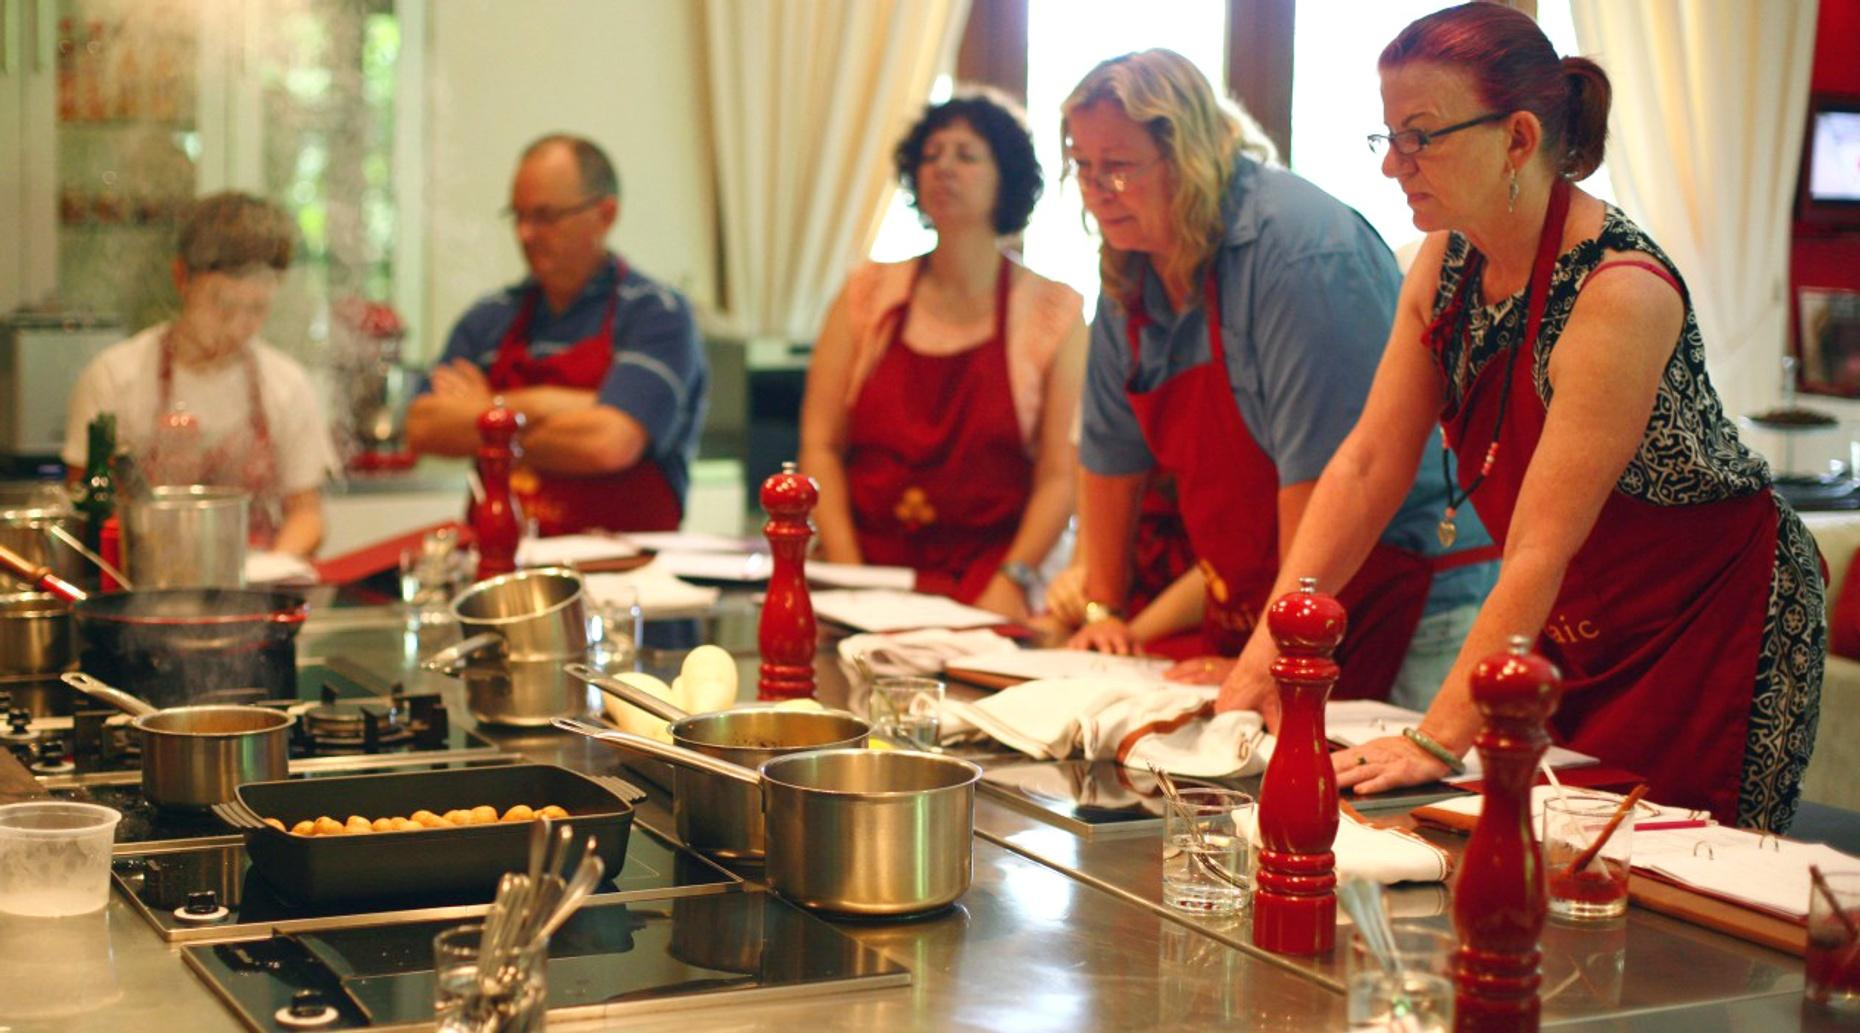 Culinary Creations Cooking Class in Santa Fe